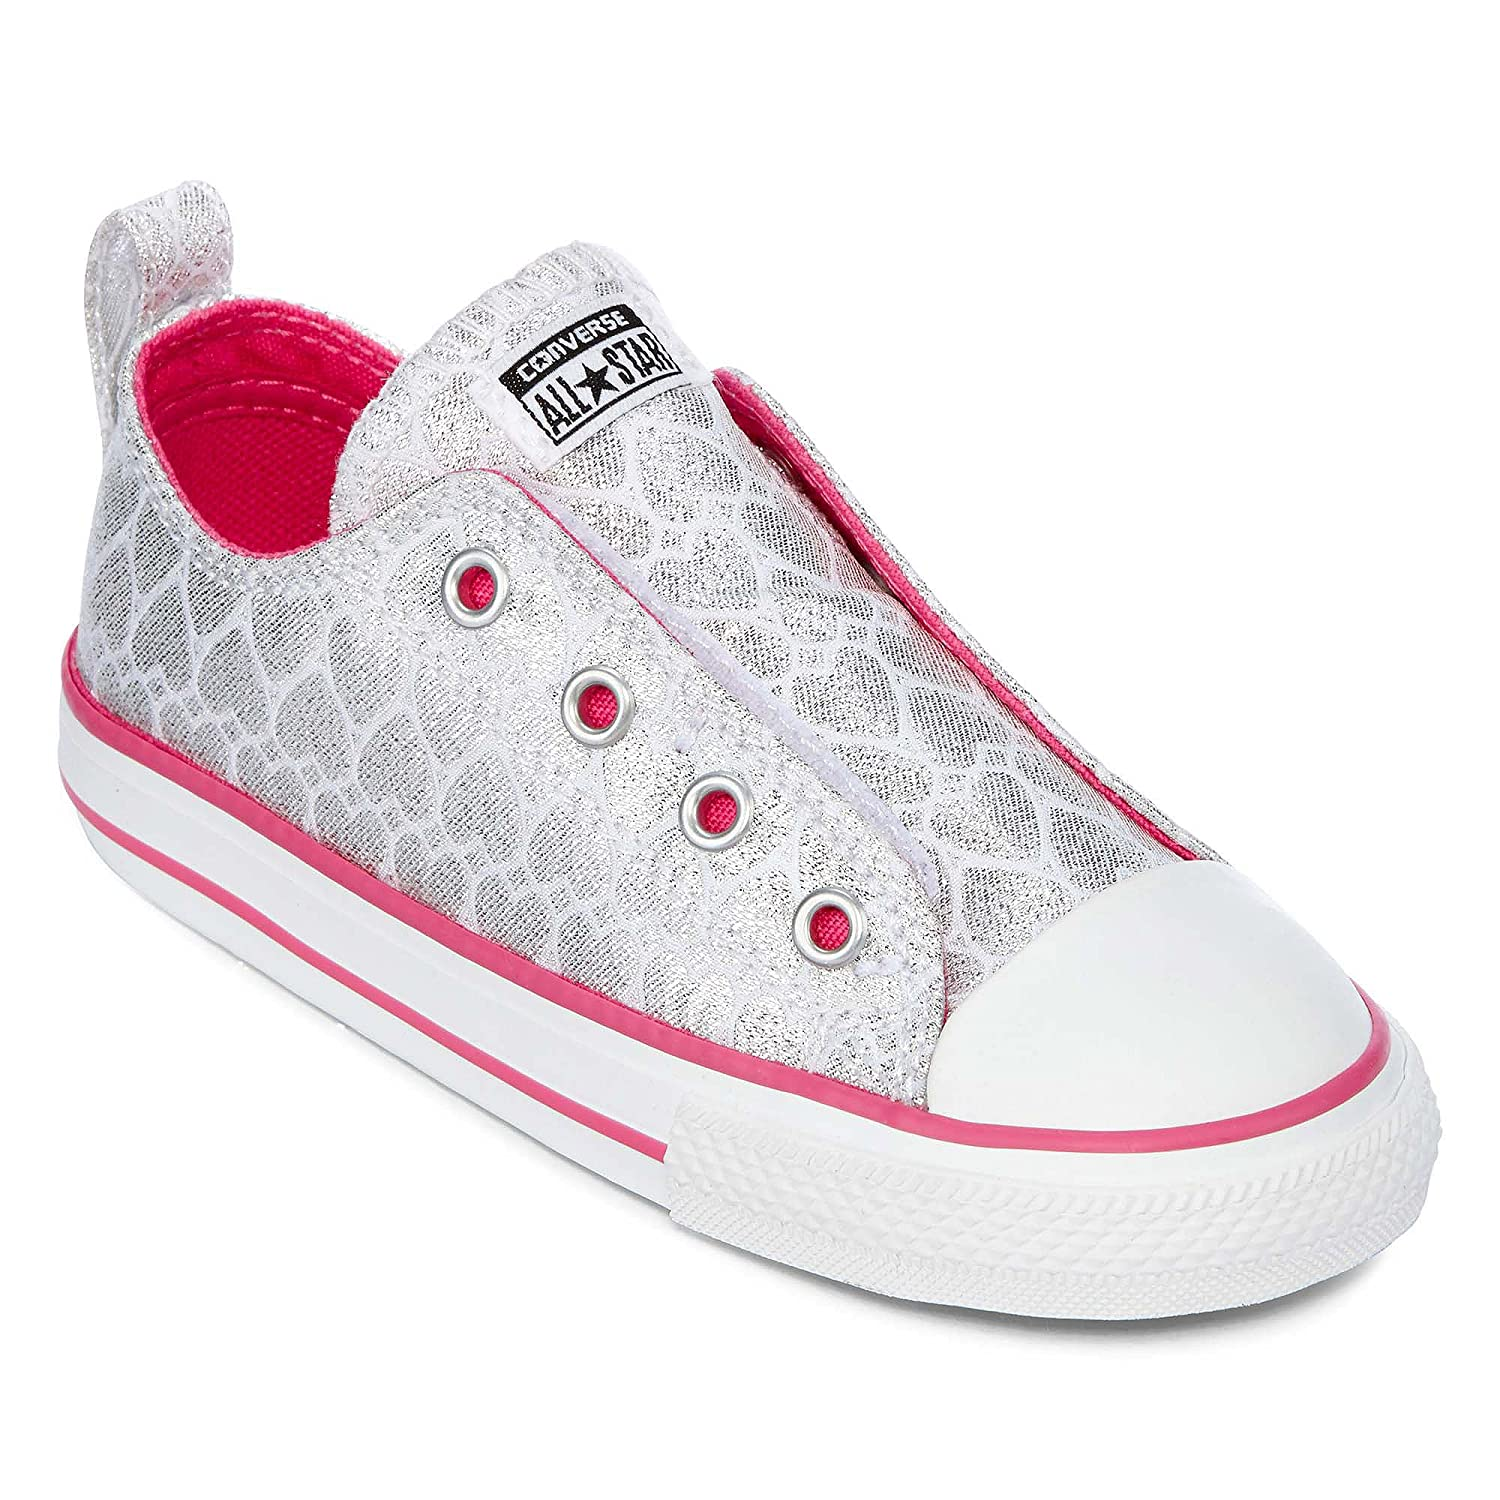 Silber Rosa Weiß Converse Unisex-Kinder CTAS-ox-Charcoal-Infant Fitnessschuhe